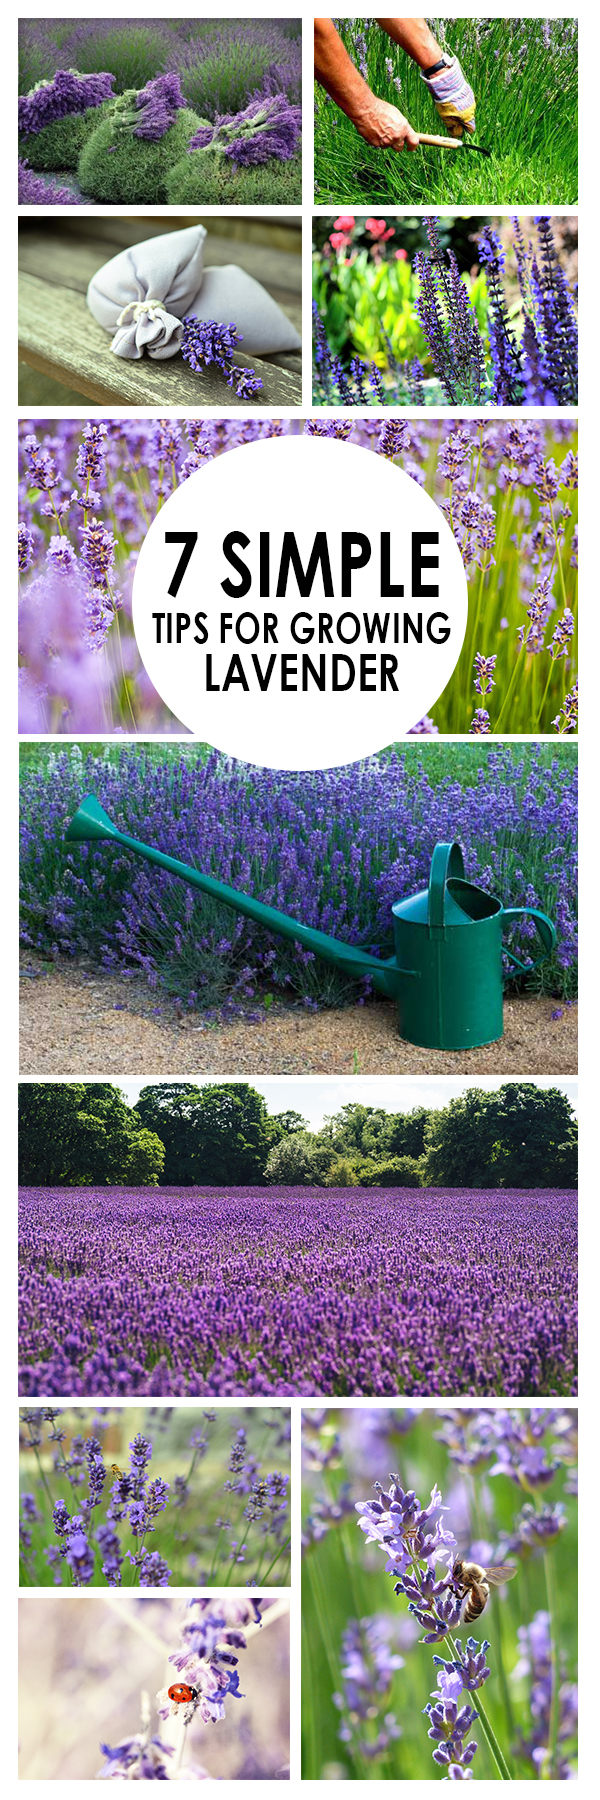 7 Simple Tips For Growing Lavender Bees And Roses